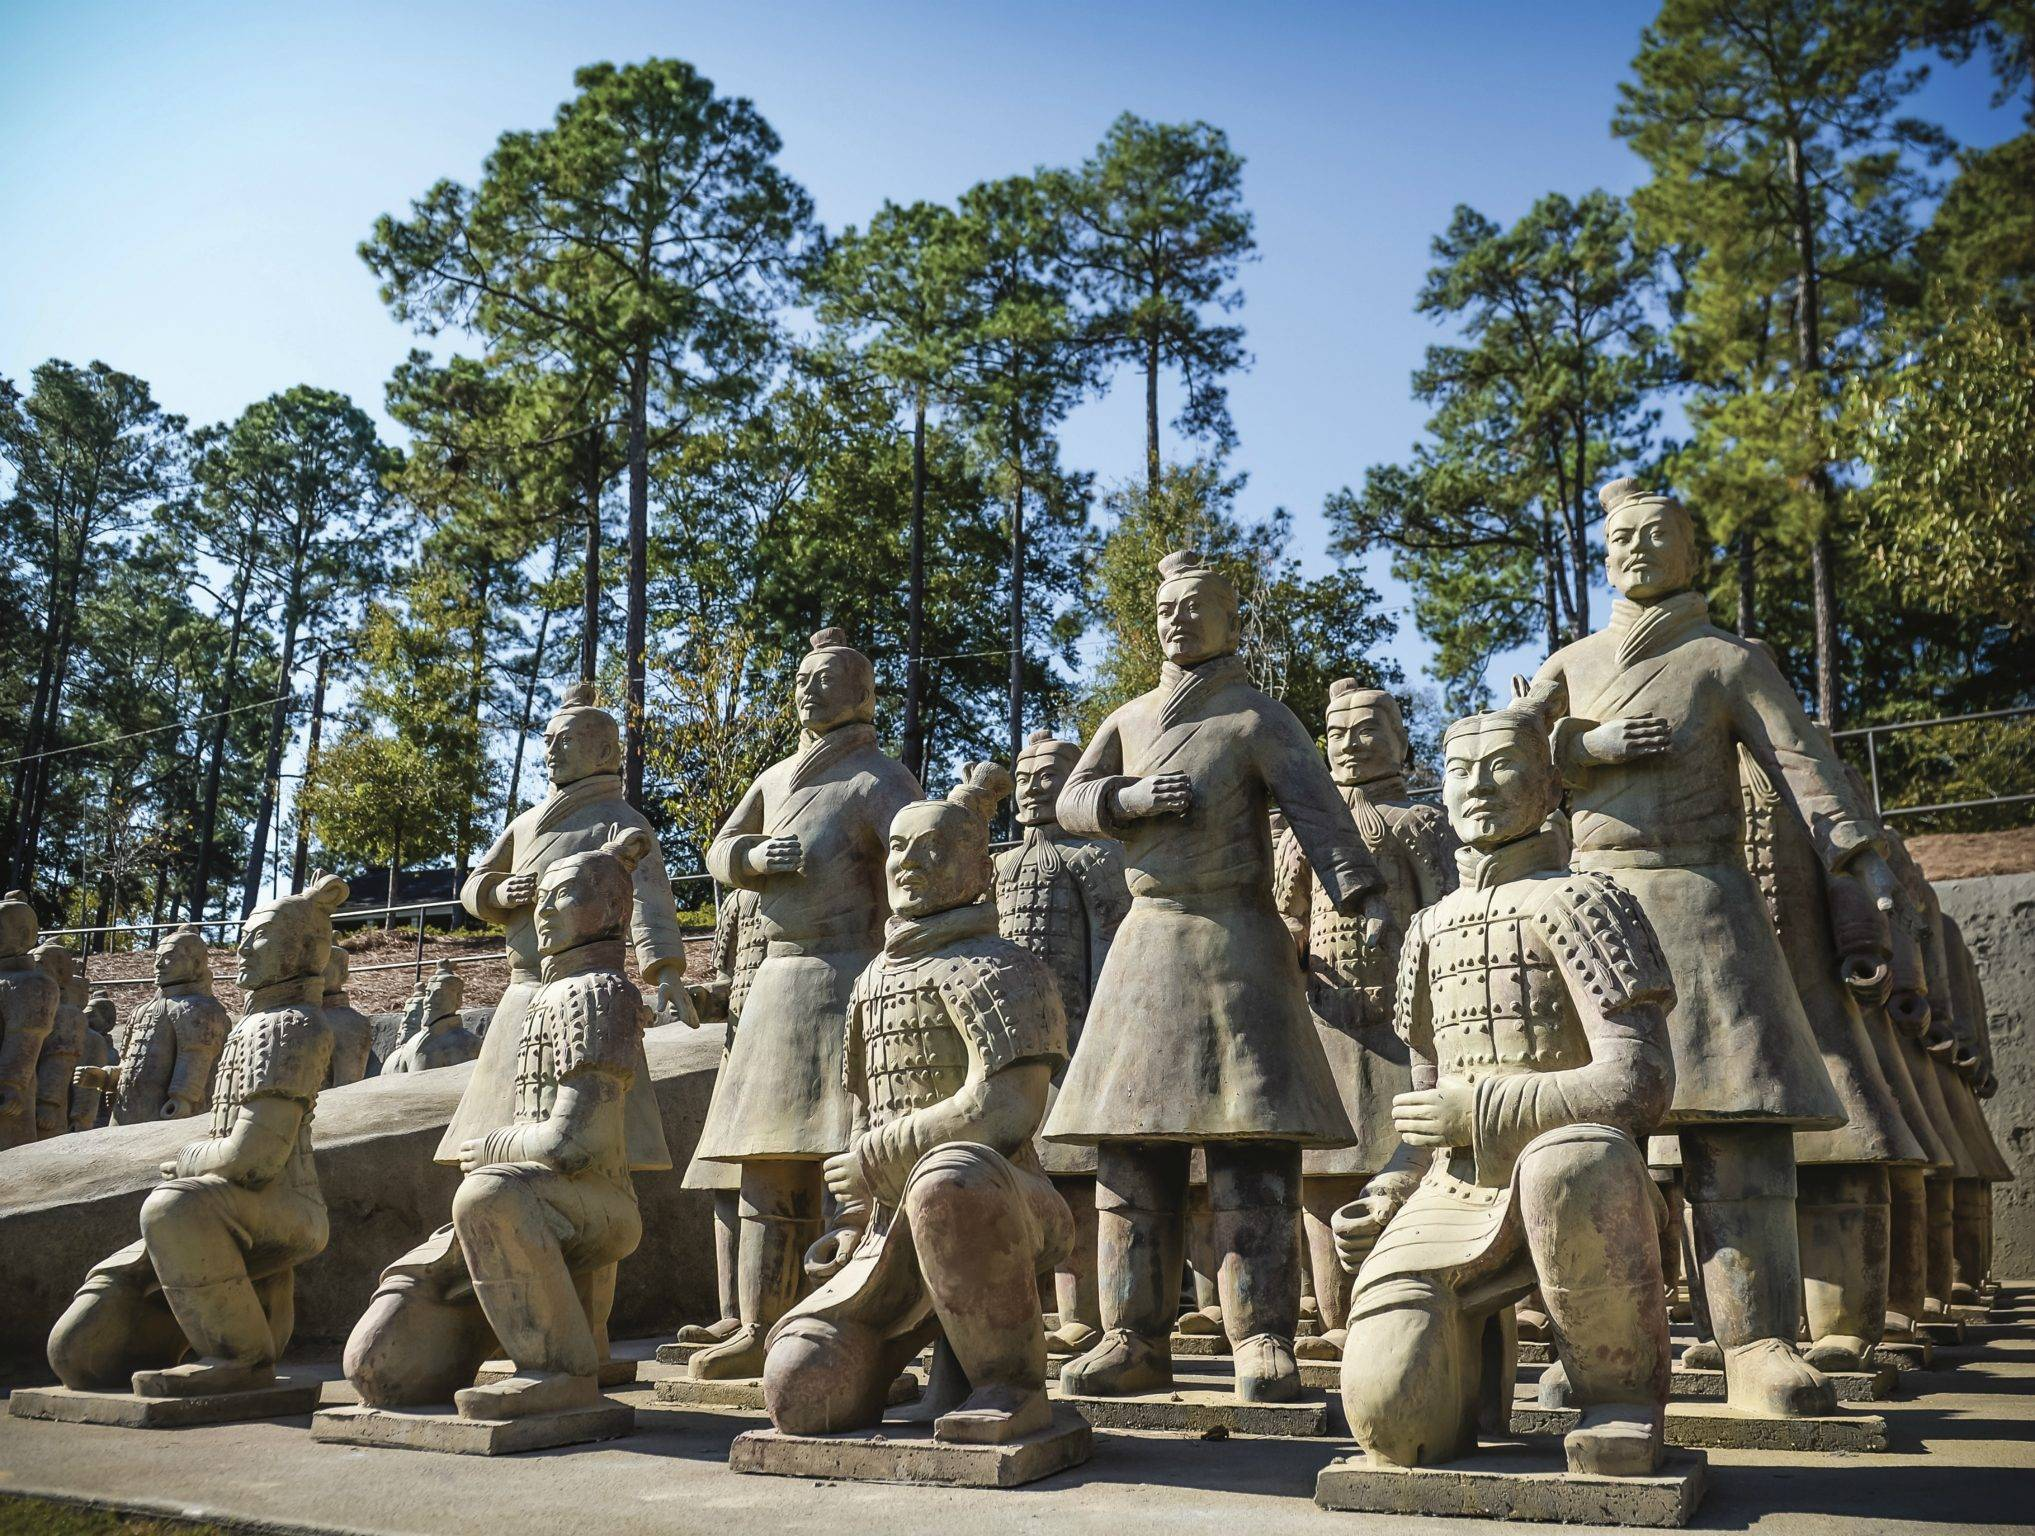 Terra cotta archers kneeling and standing in pit 3 at the Janice Hawkins Cultural Arts Park